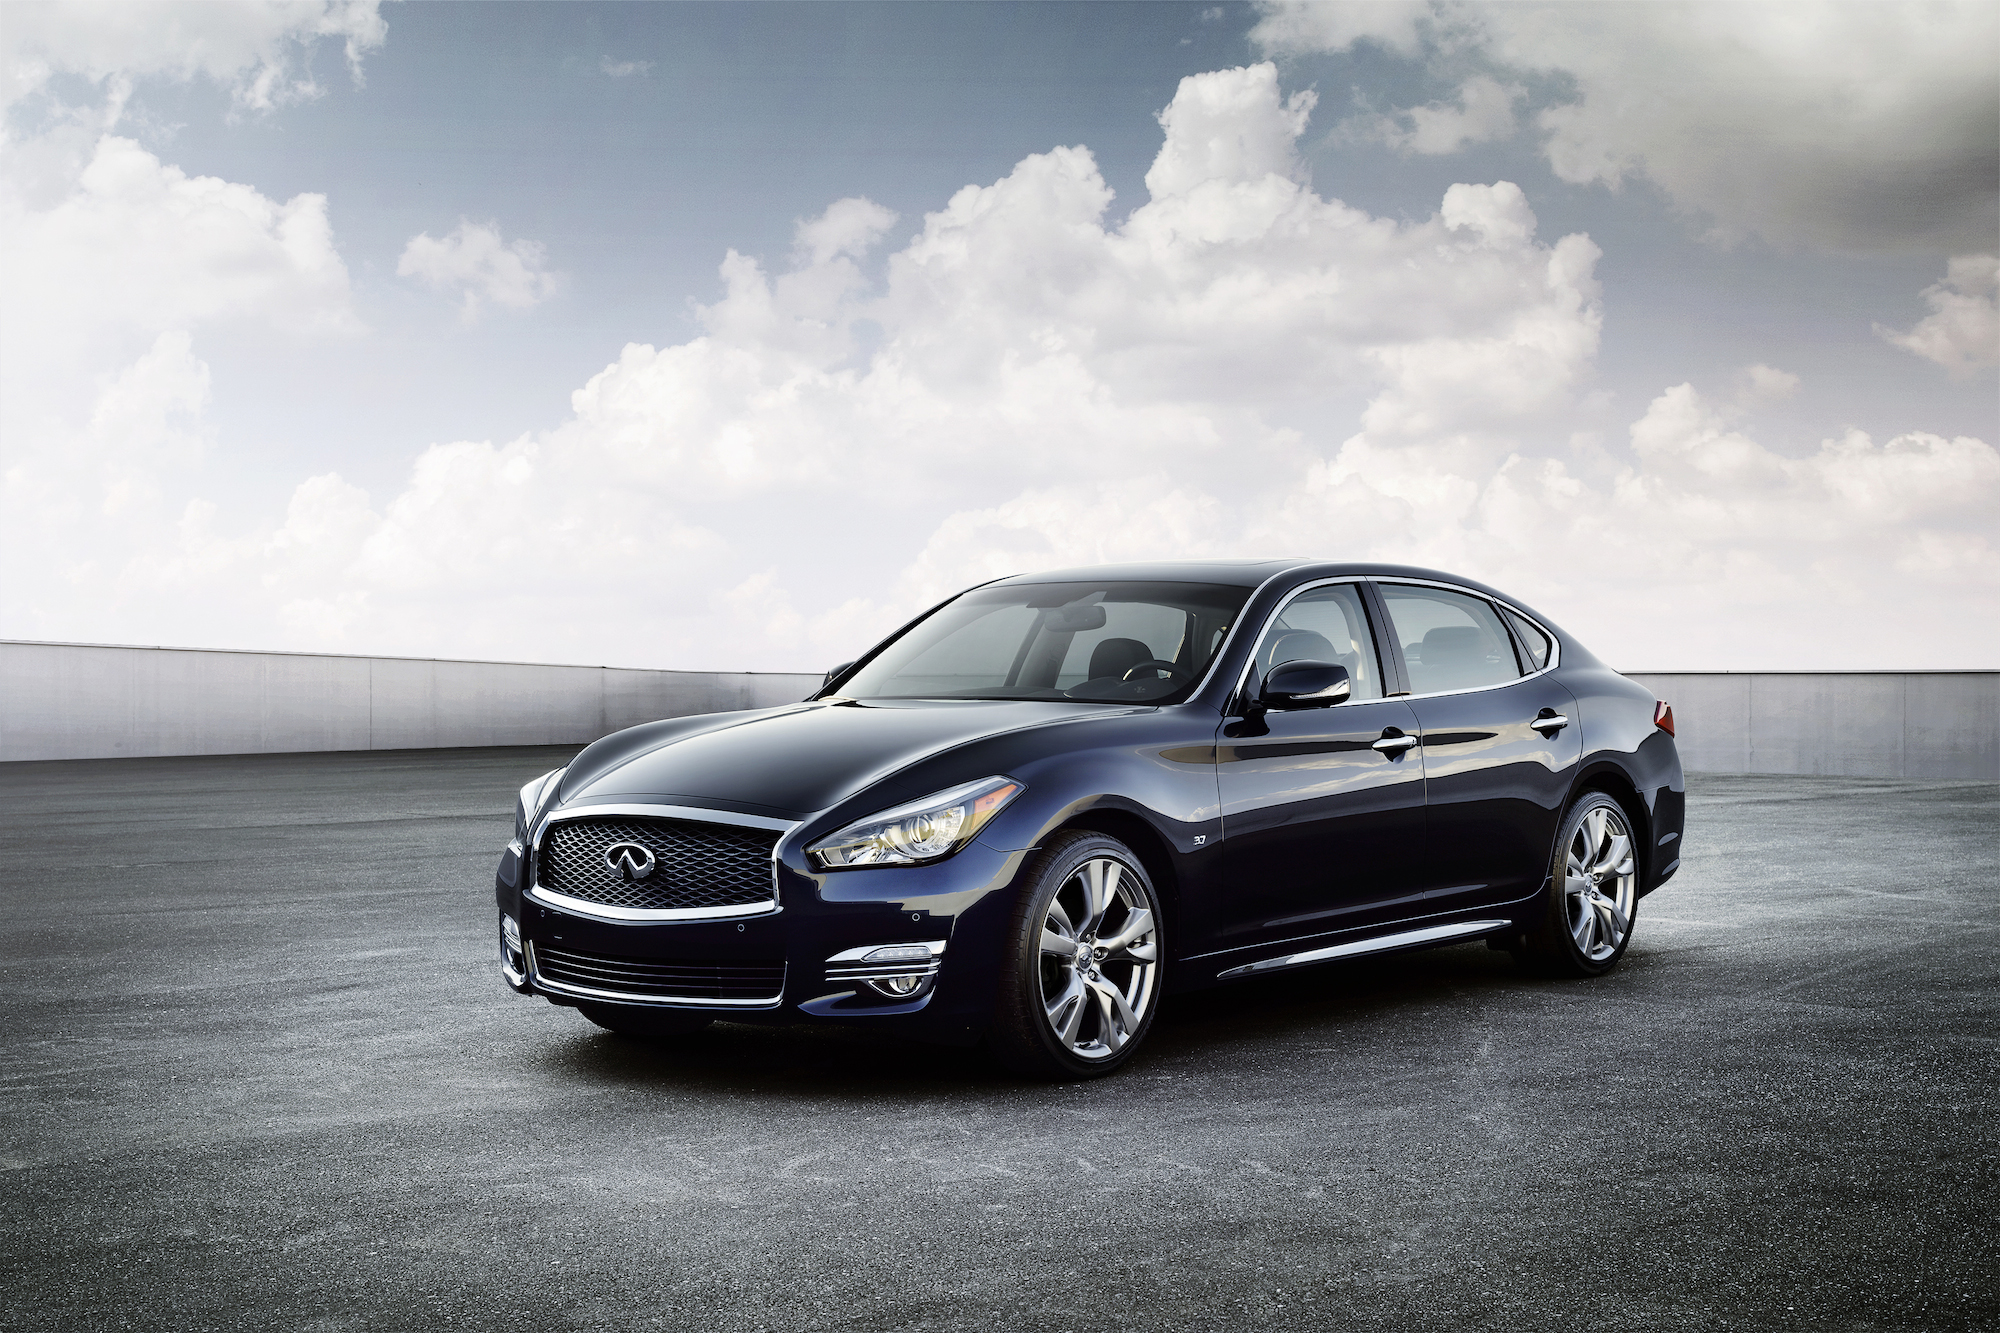 autoevolution infiniti gallery for announced the photo infinity uk pricing news